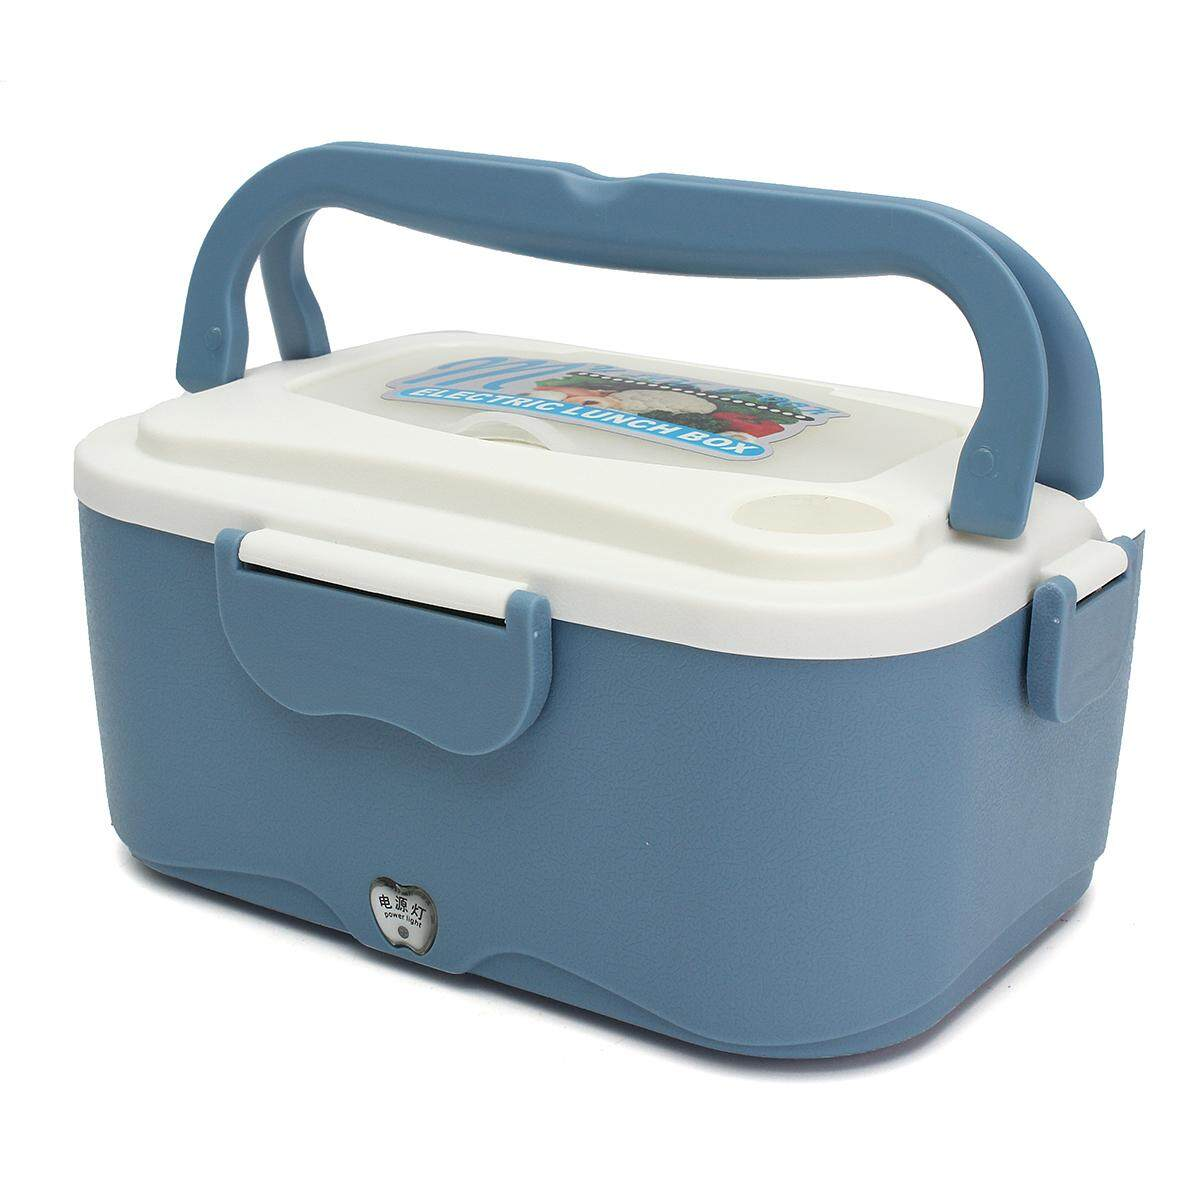 Portable Car Electric Heating Lunch Box Food Warm Heater Storage Container Vans By Moonbeam.